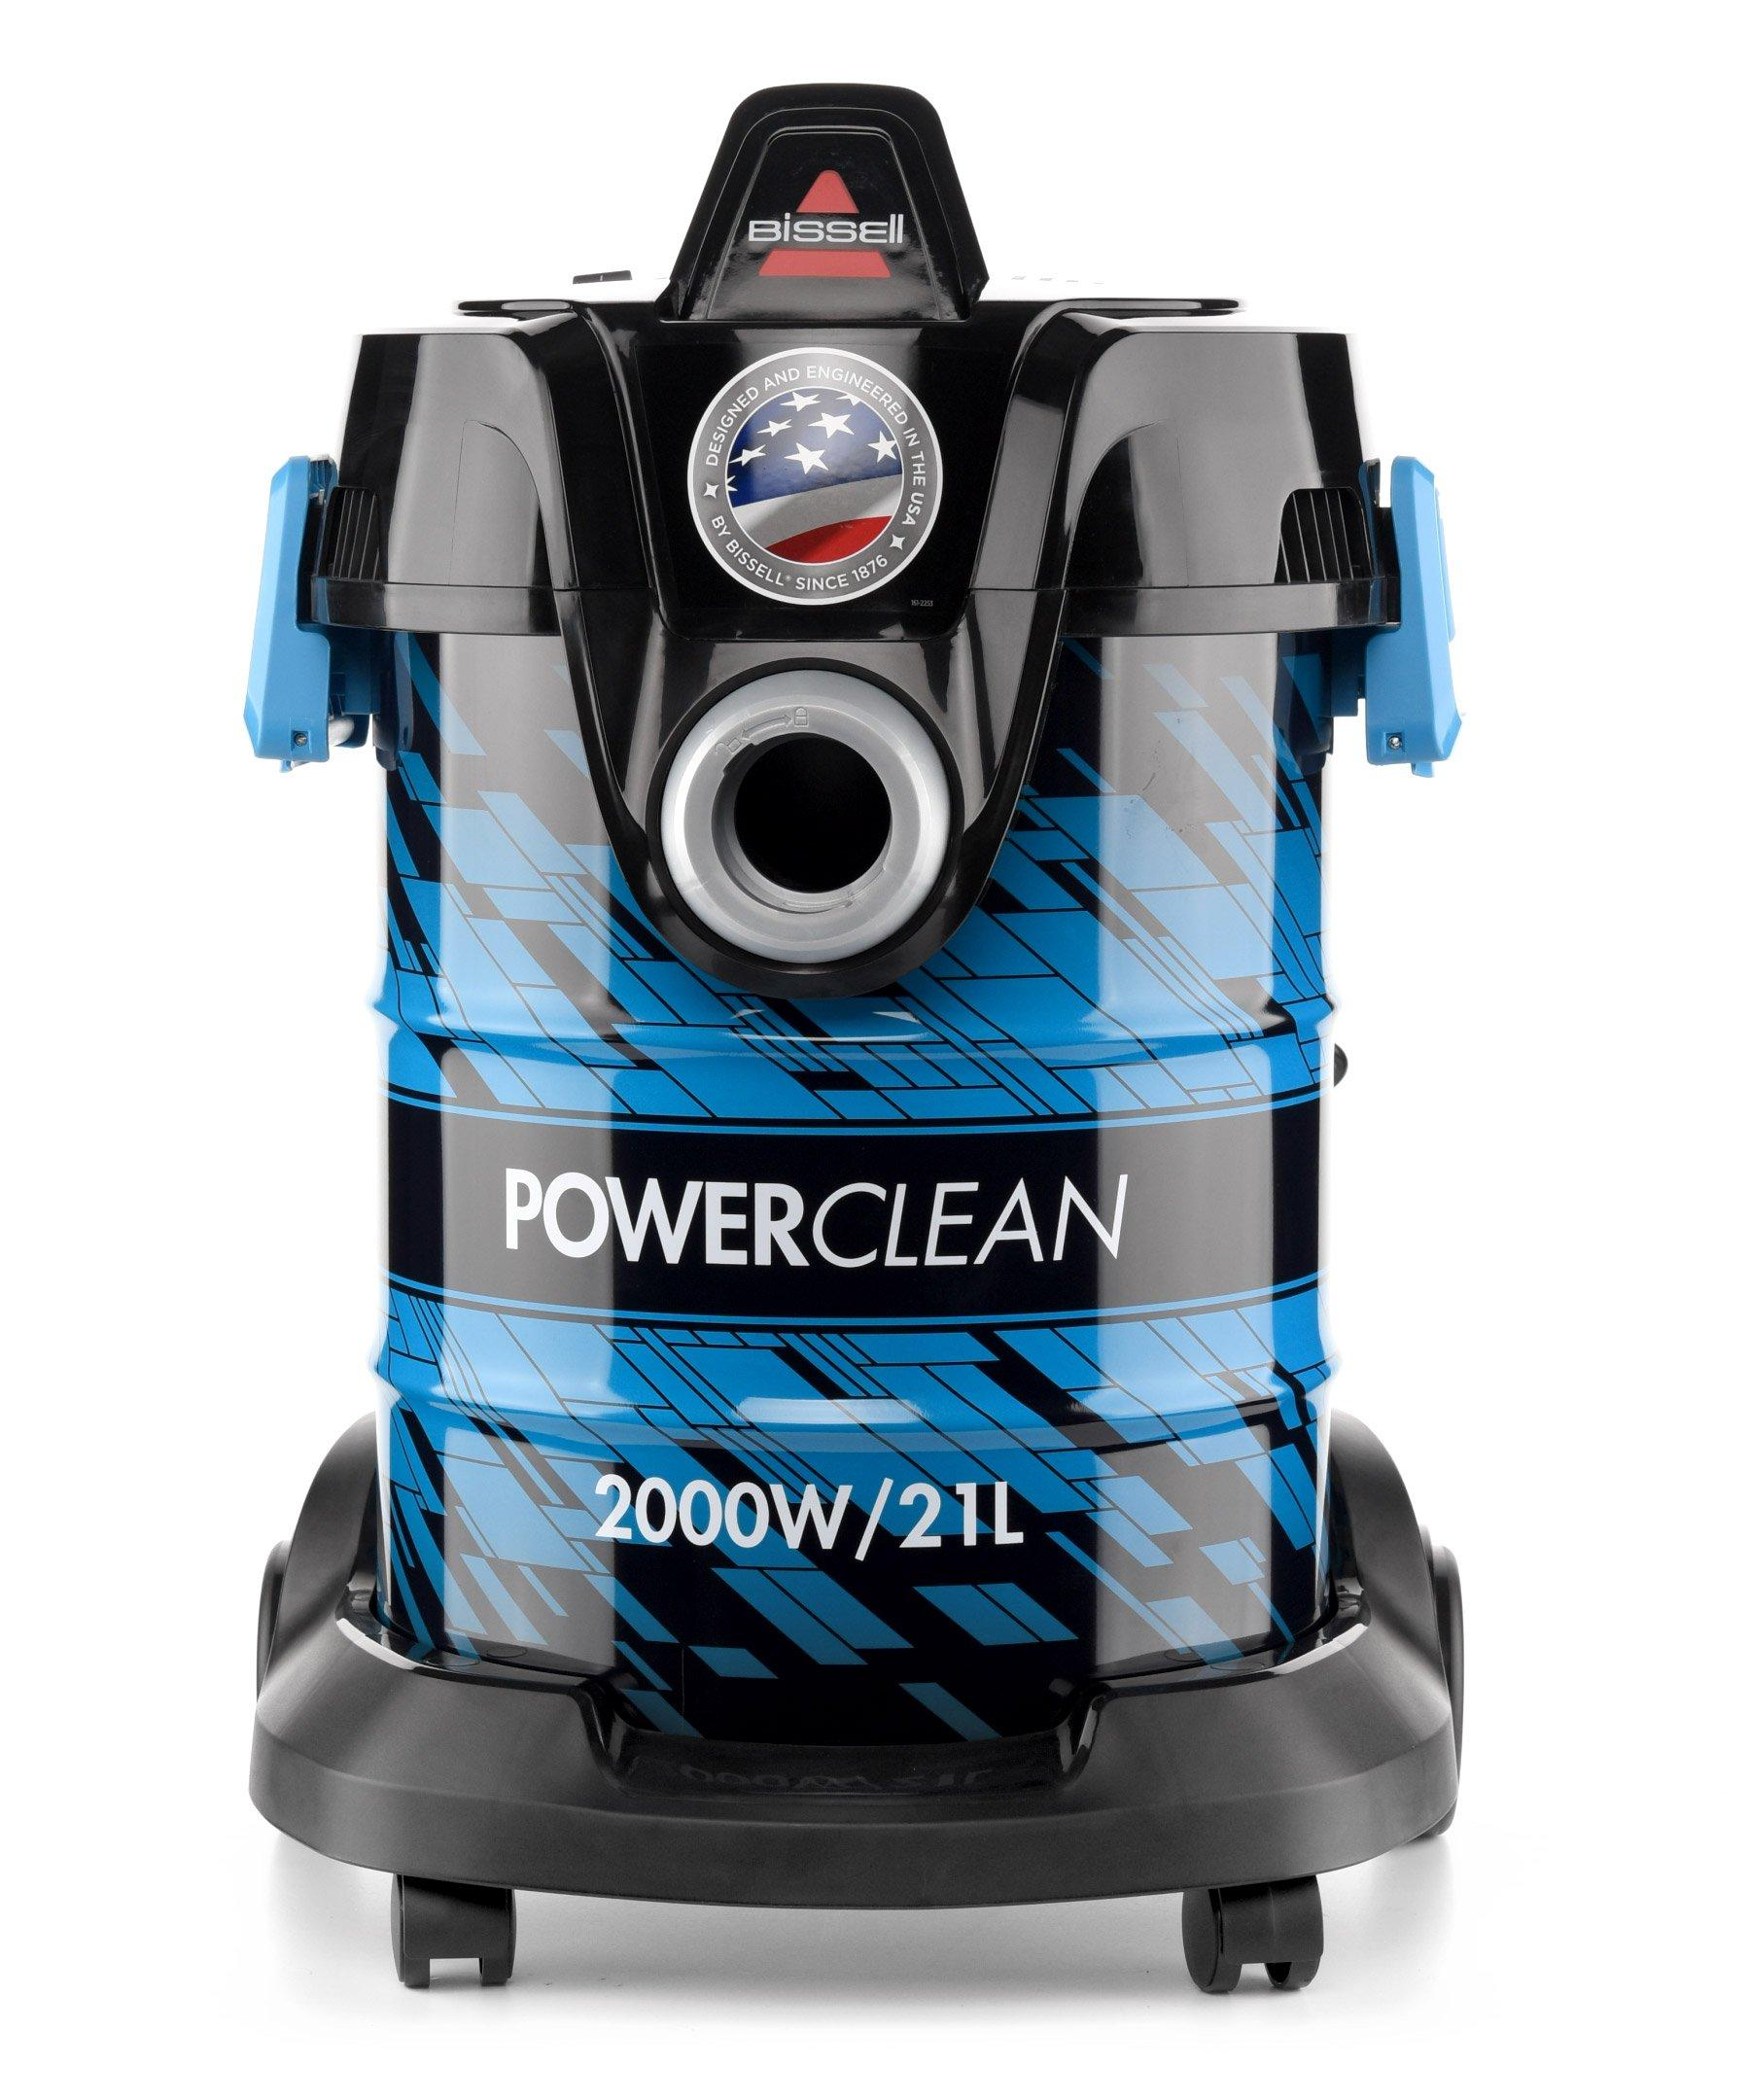 Bissell Power Clean Drum Vacuum Cleaner, 2000W, 21Liter, Weight